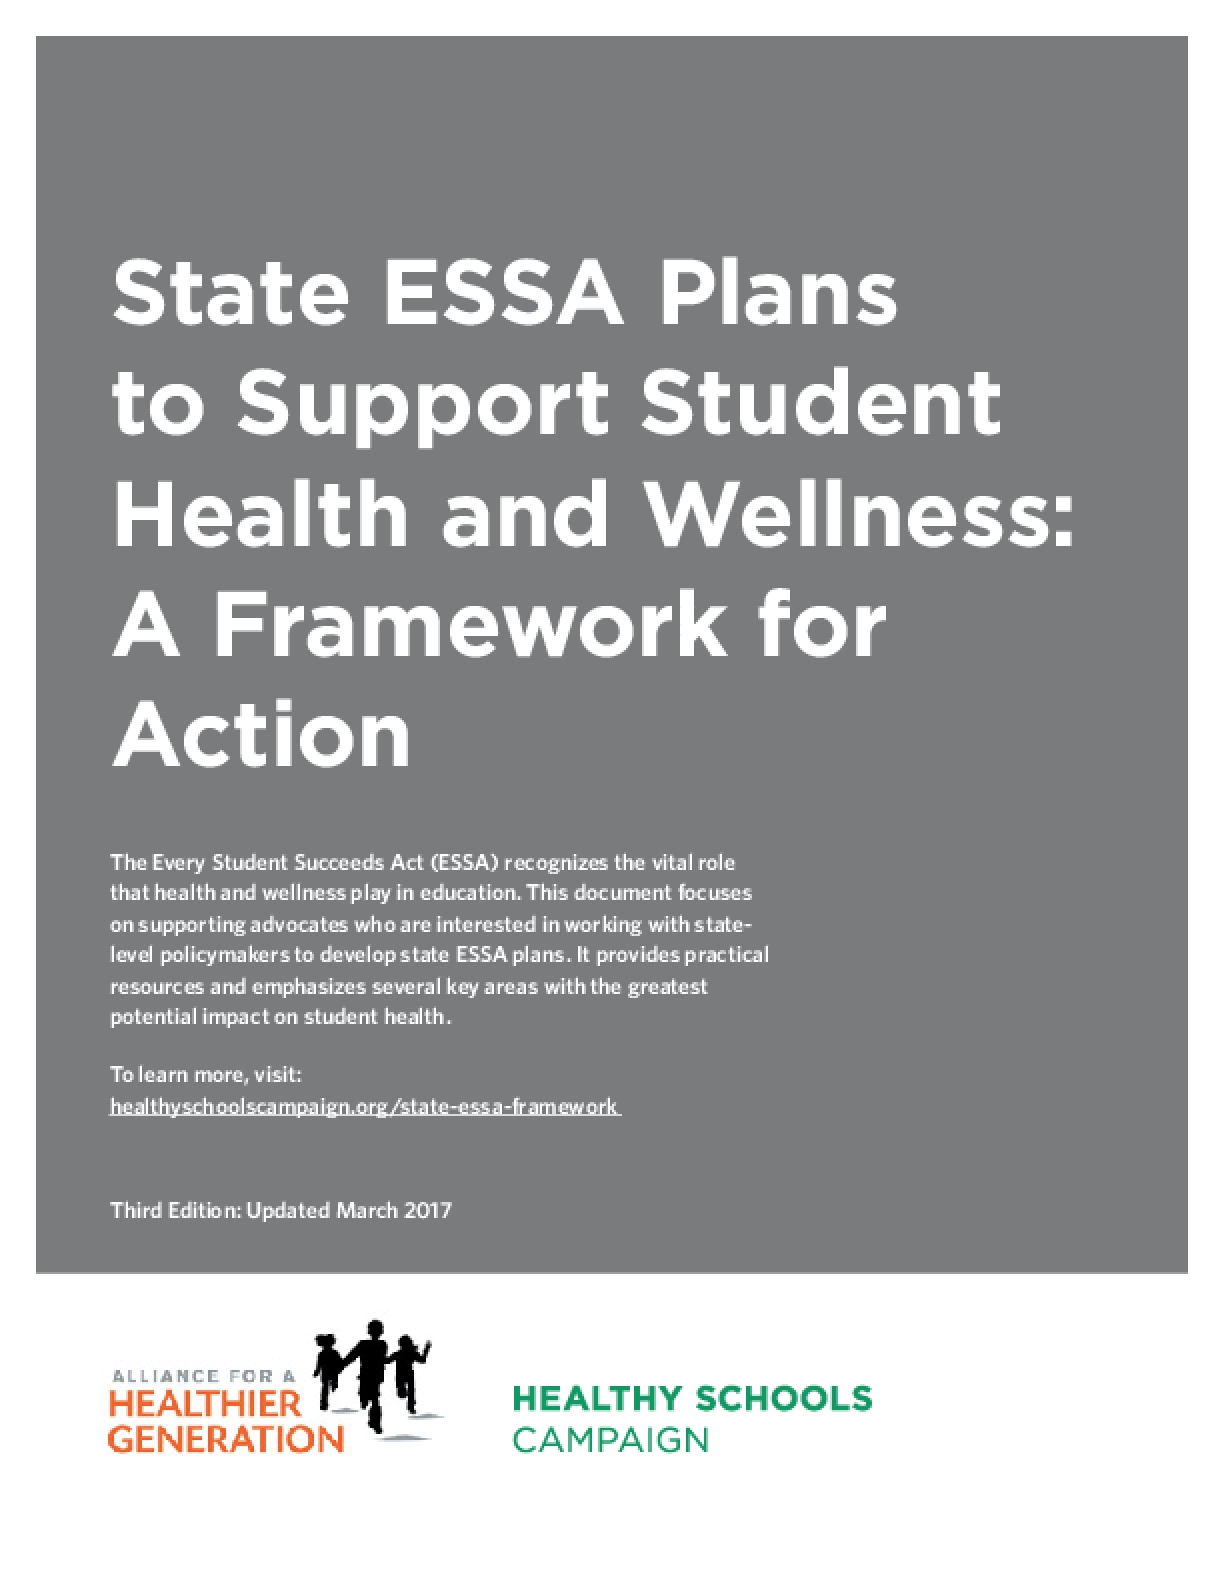 State ESSA Plans to Support Student Health and Wellness: A Framework for Action